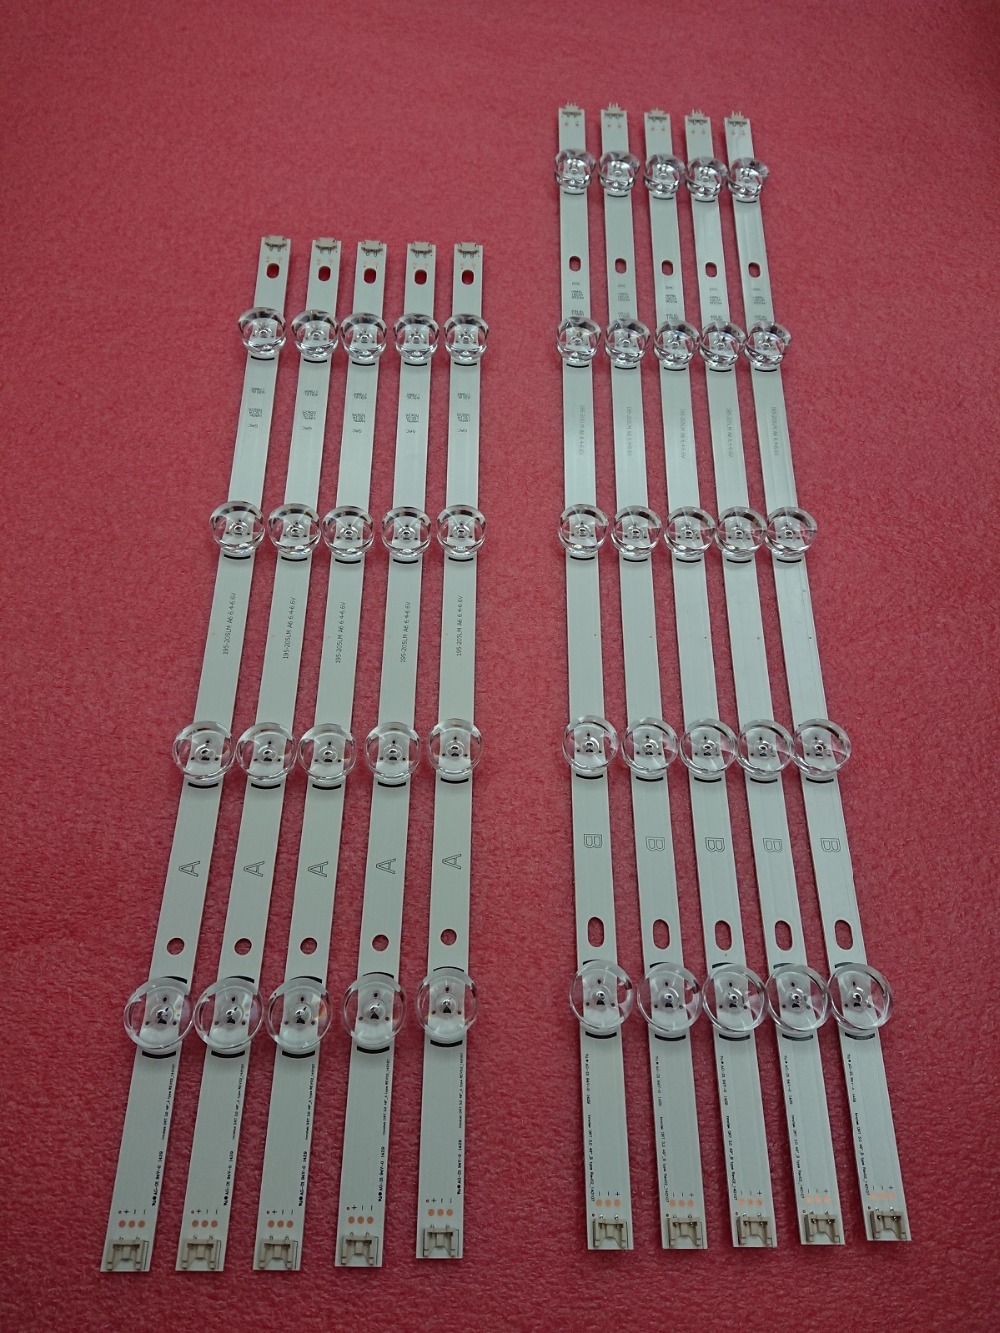 New 5set 50 PCS LED backlgith strip Replacement for LG 49LB5500 LC490DUE Innotek DRT 3 0